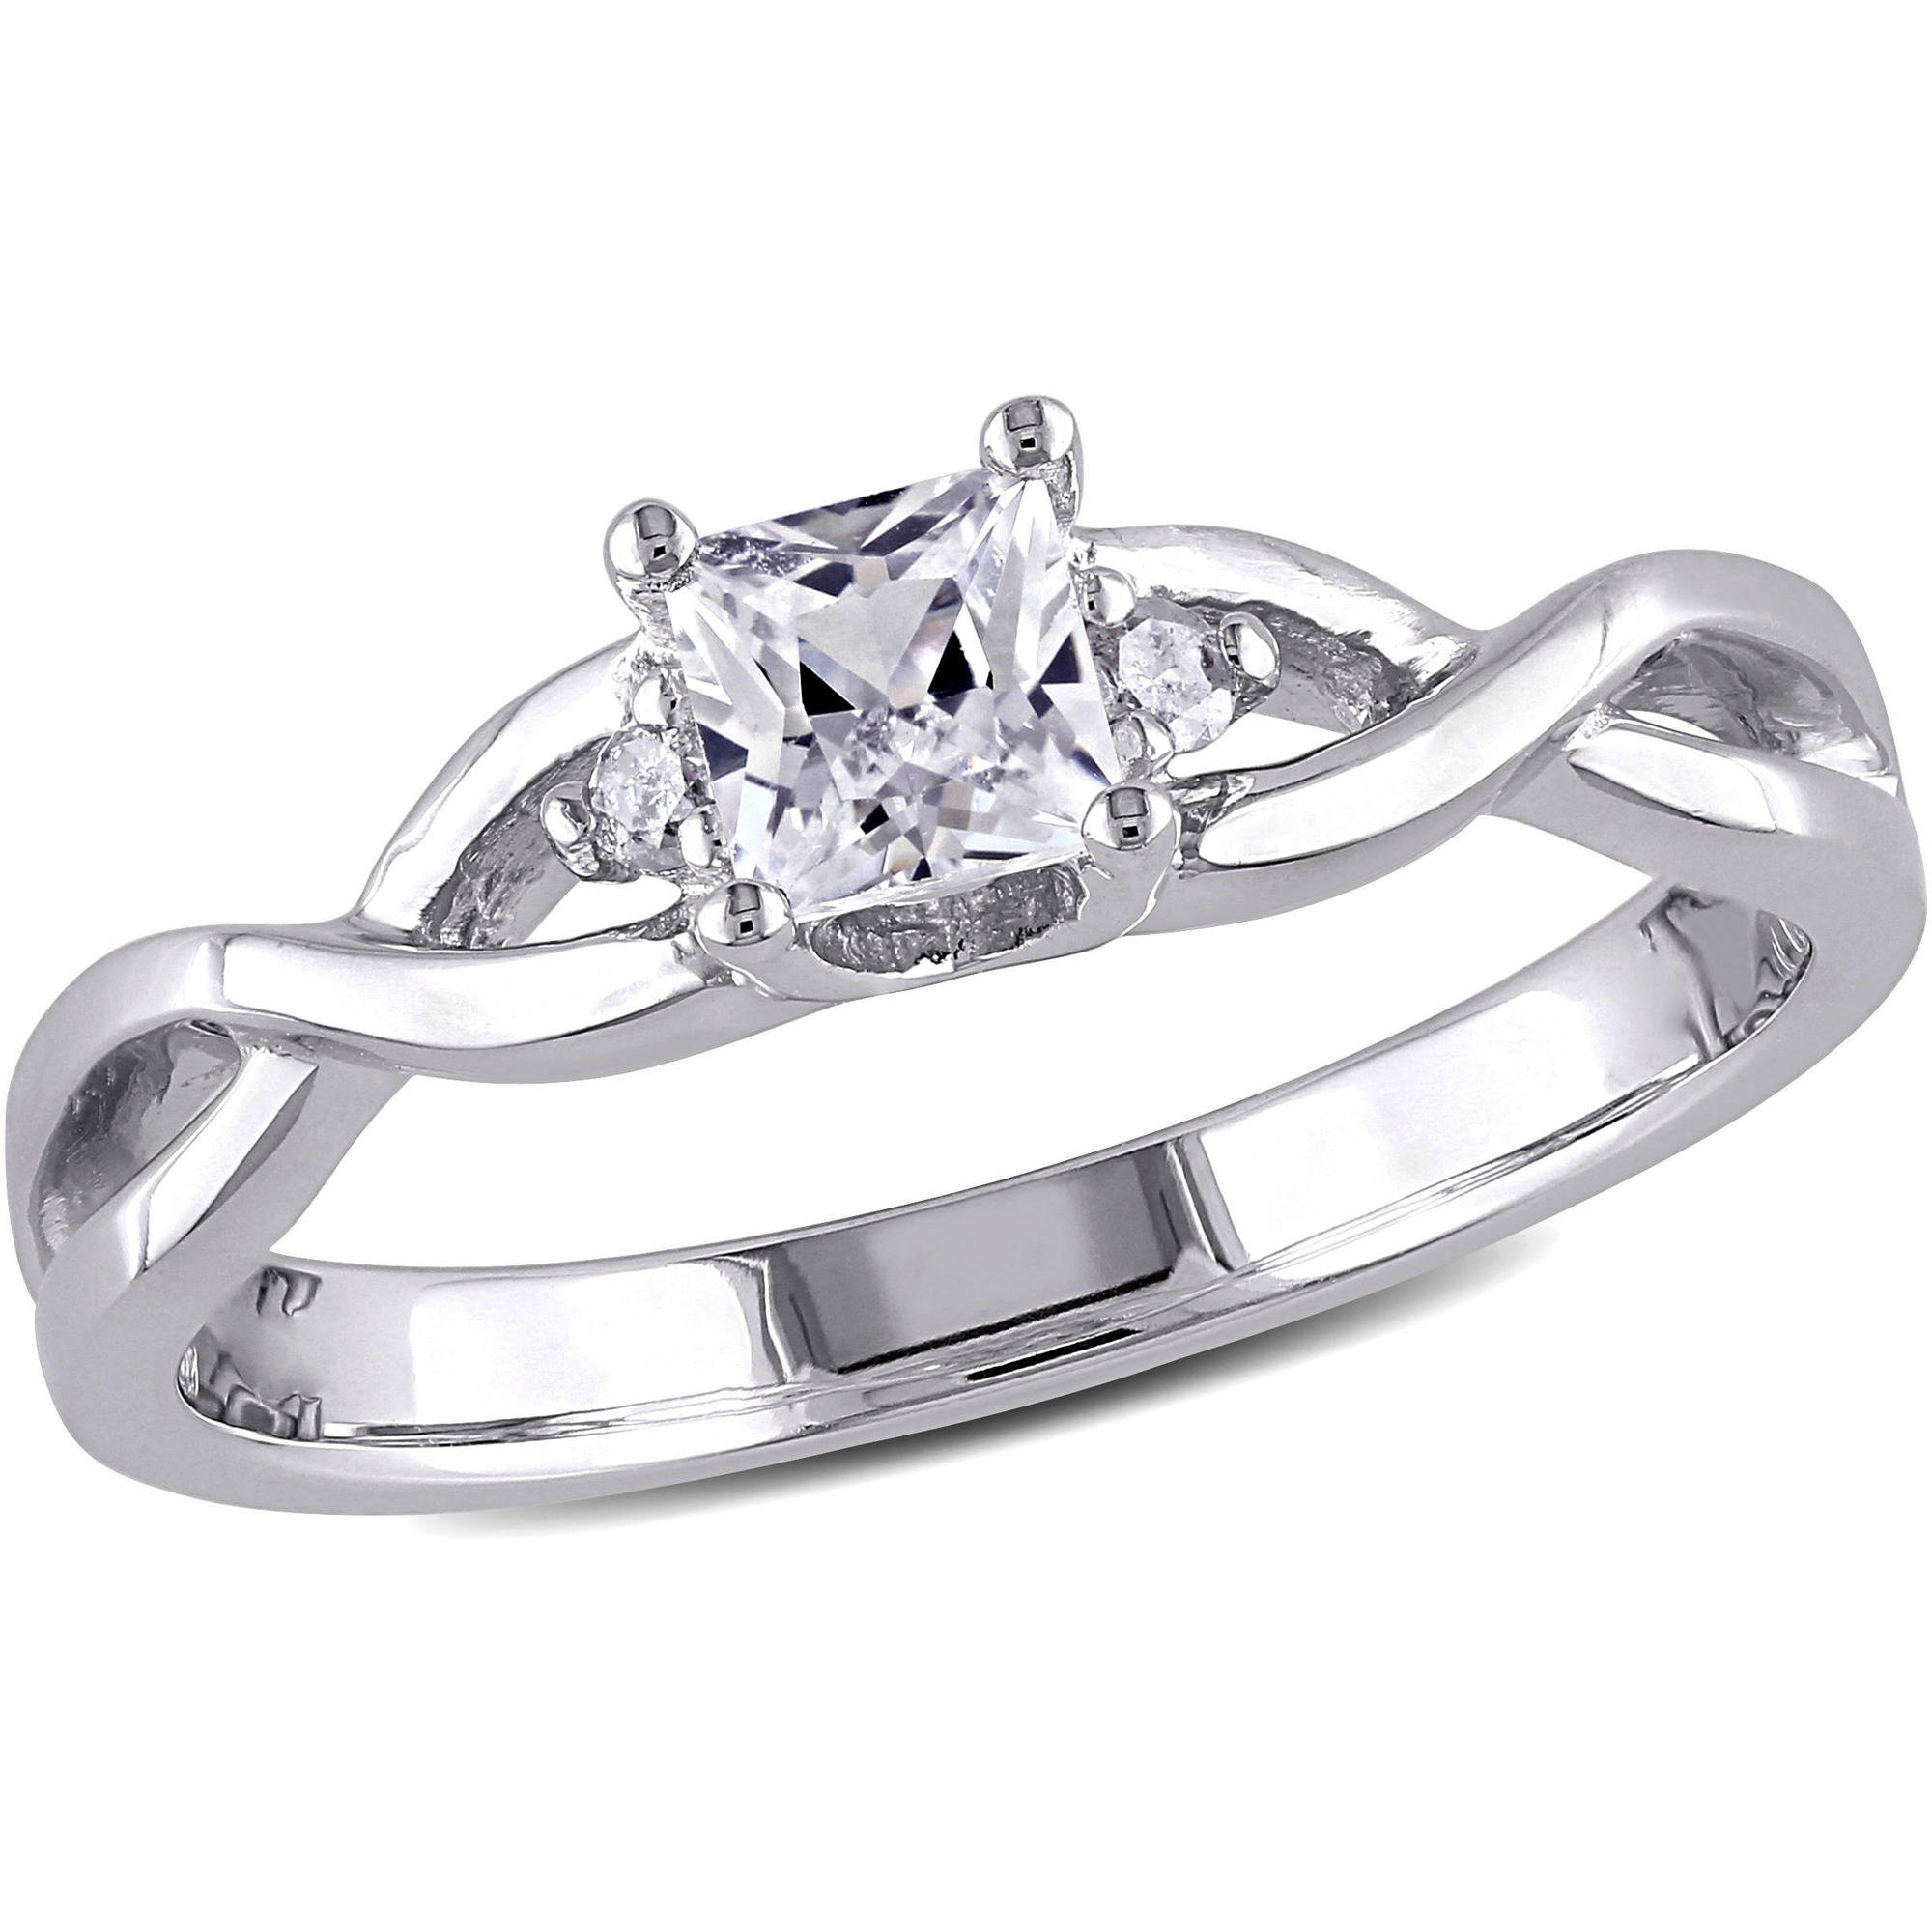 Miabella 3/8 Carat T.G.W. Princess-Cut Created White Sapphire and Diamond-Accent Sterling Silver Cross-Over Engagement Ring